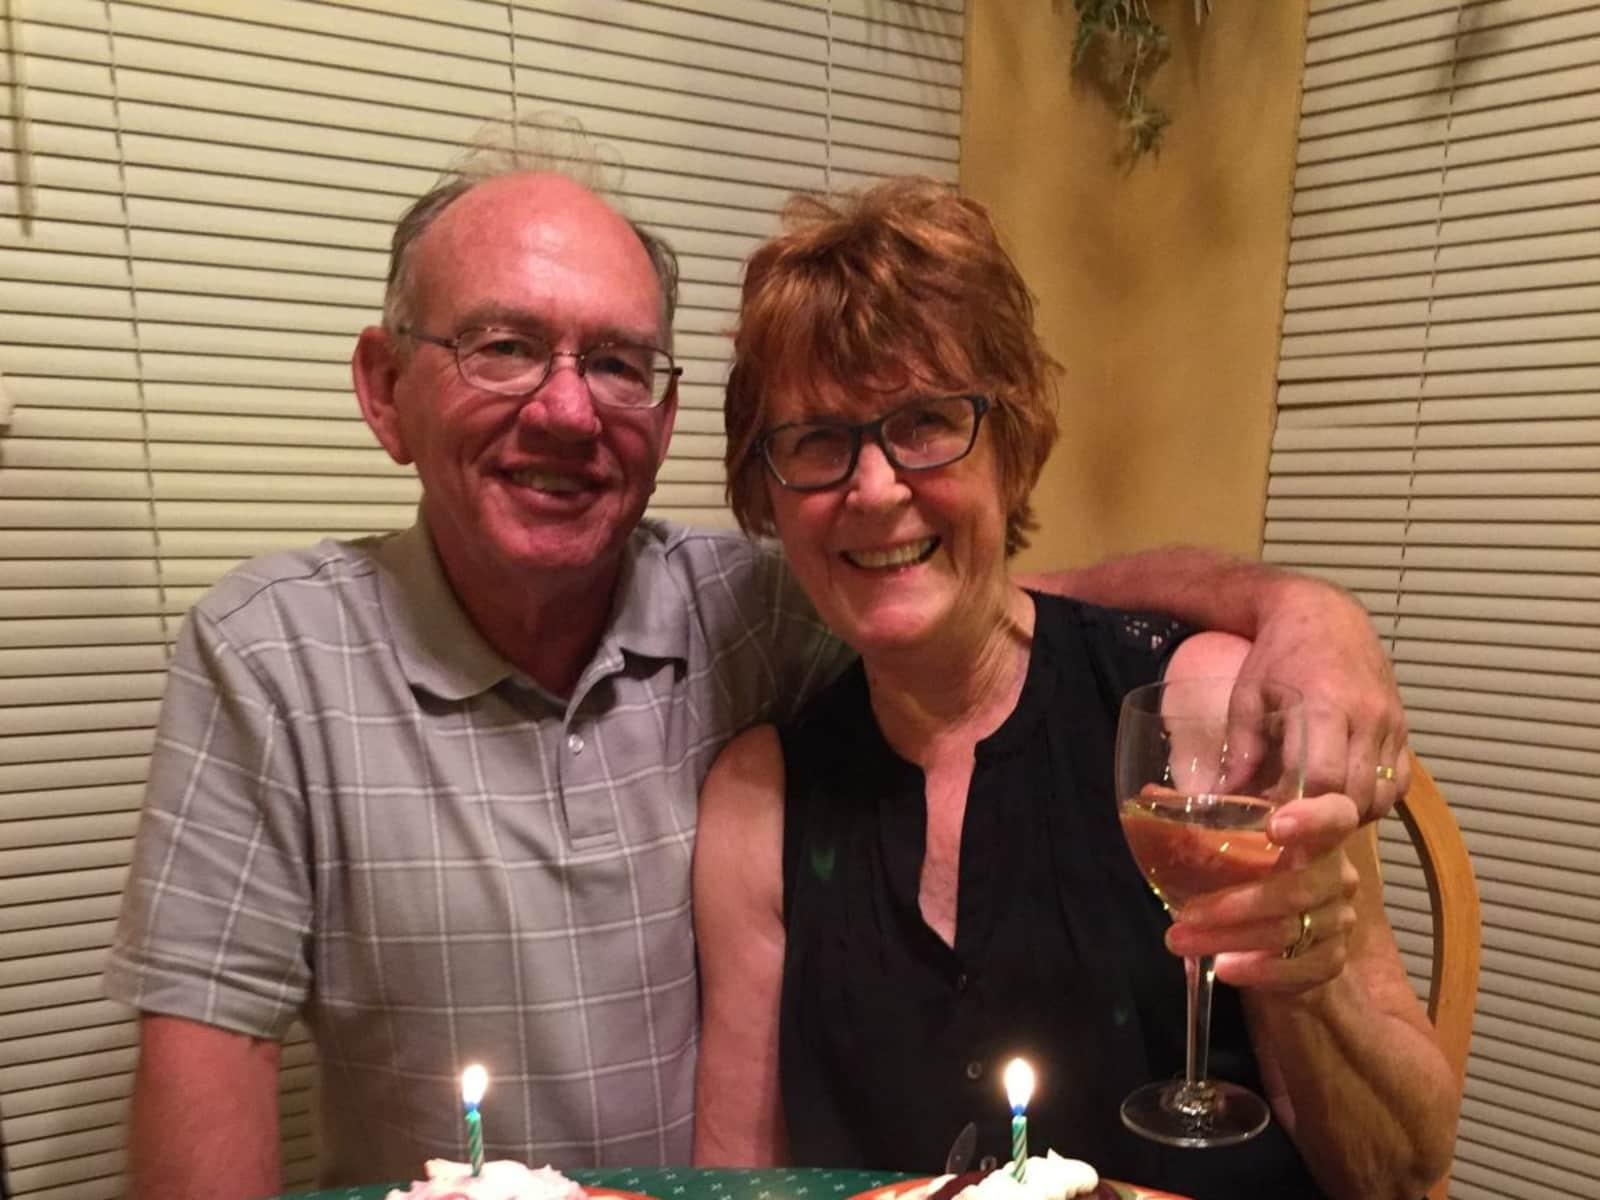 Phyllis & Tim from Fort Collins, Colorado, United States